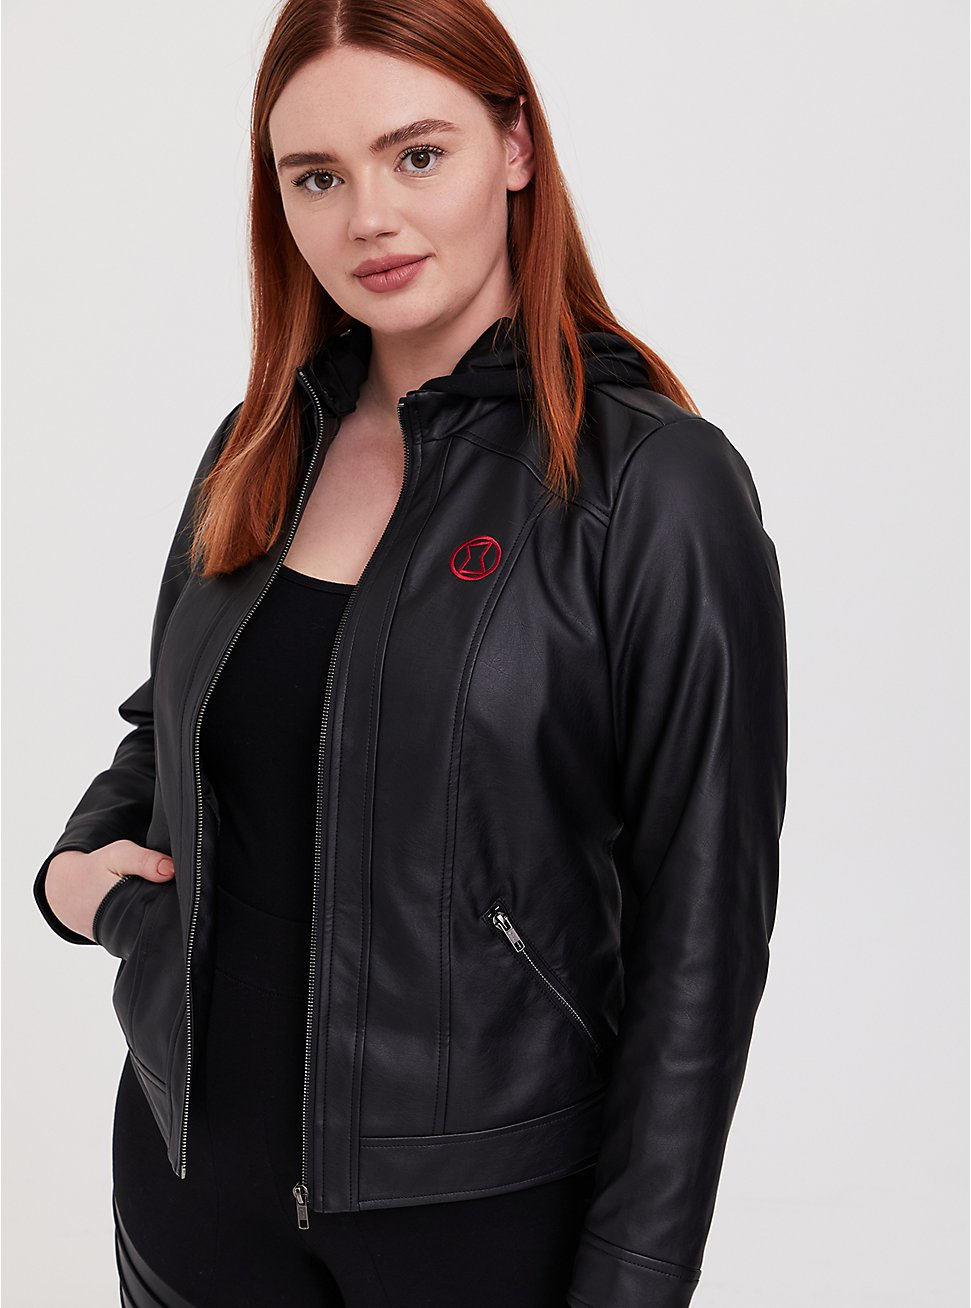 Her Universe Marvel Black Widow Black Faux Leather Hooded Jacket, DEEP BLACK, hi-res